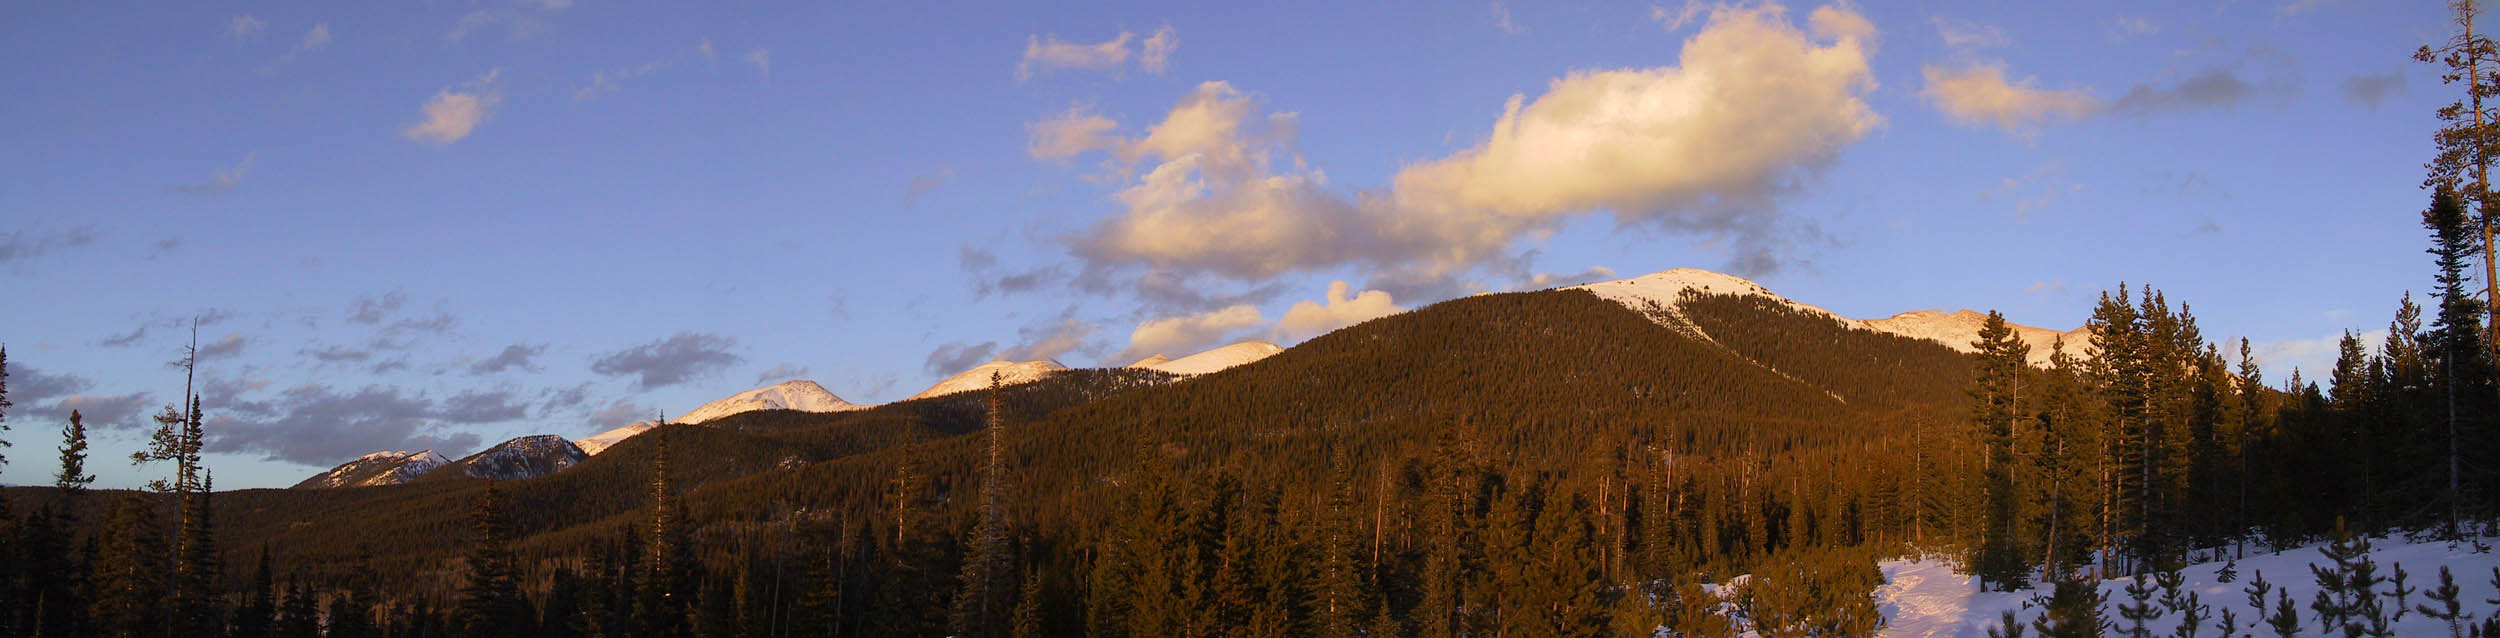 Yurt Trip 2002: Sunset Panoramic